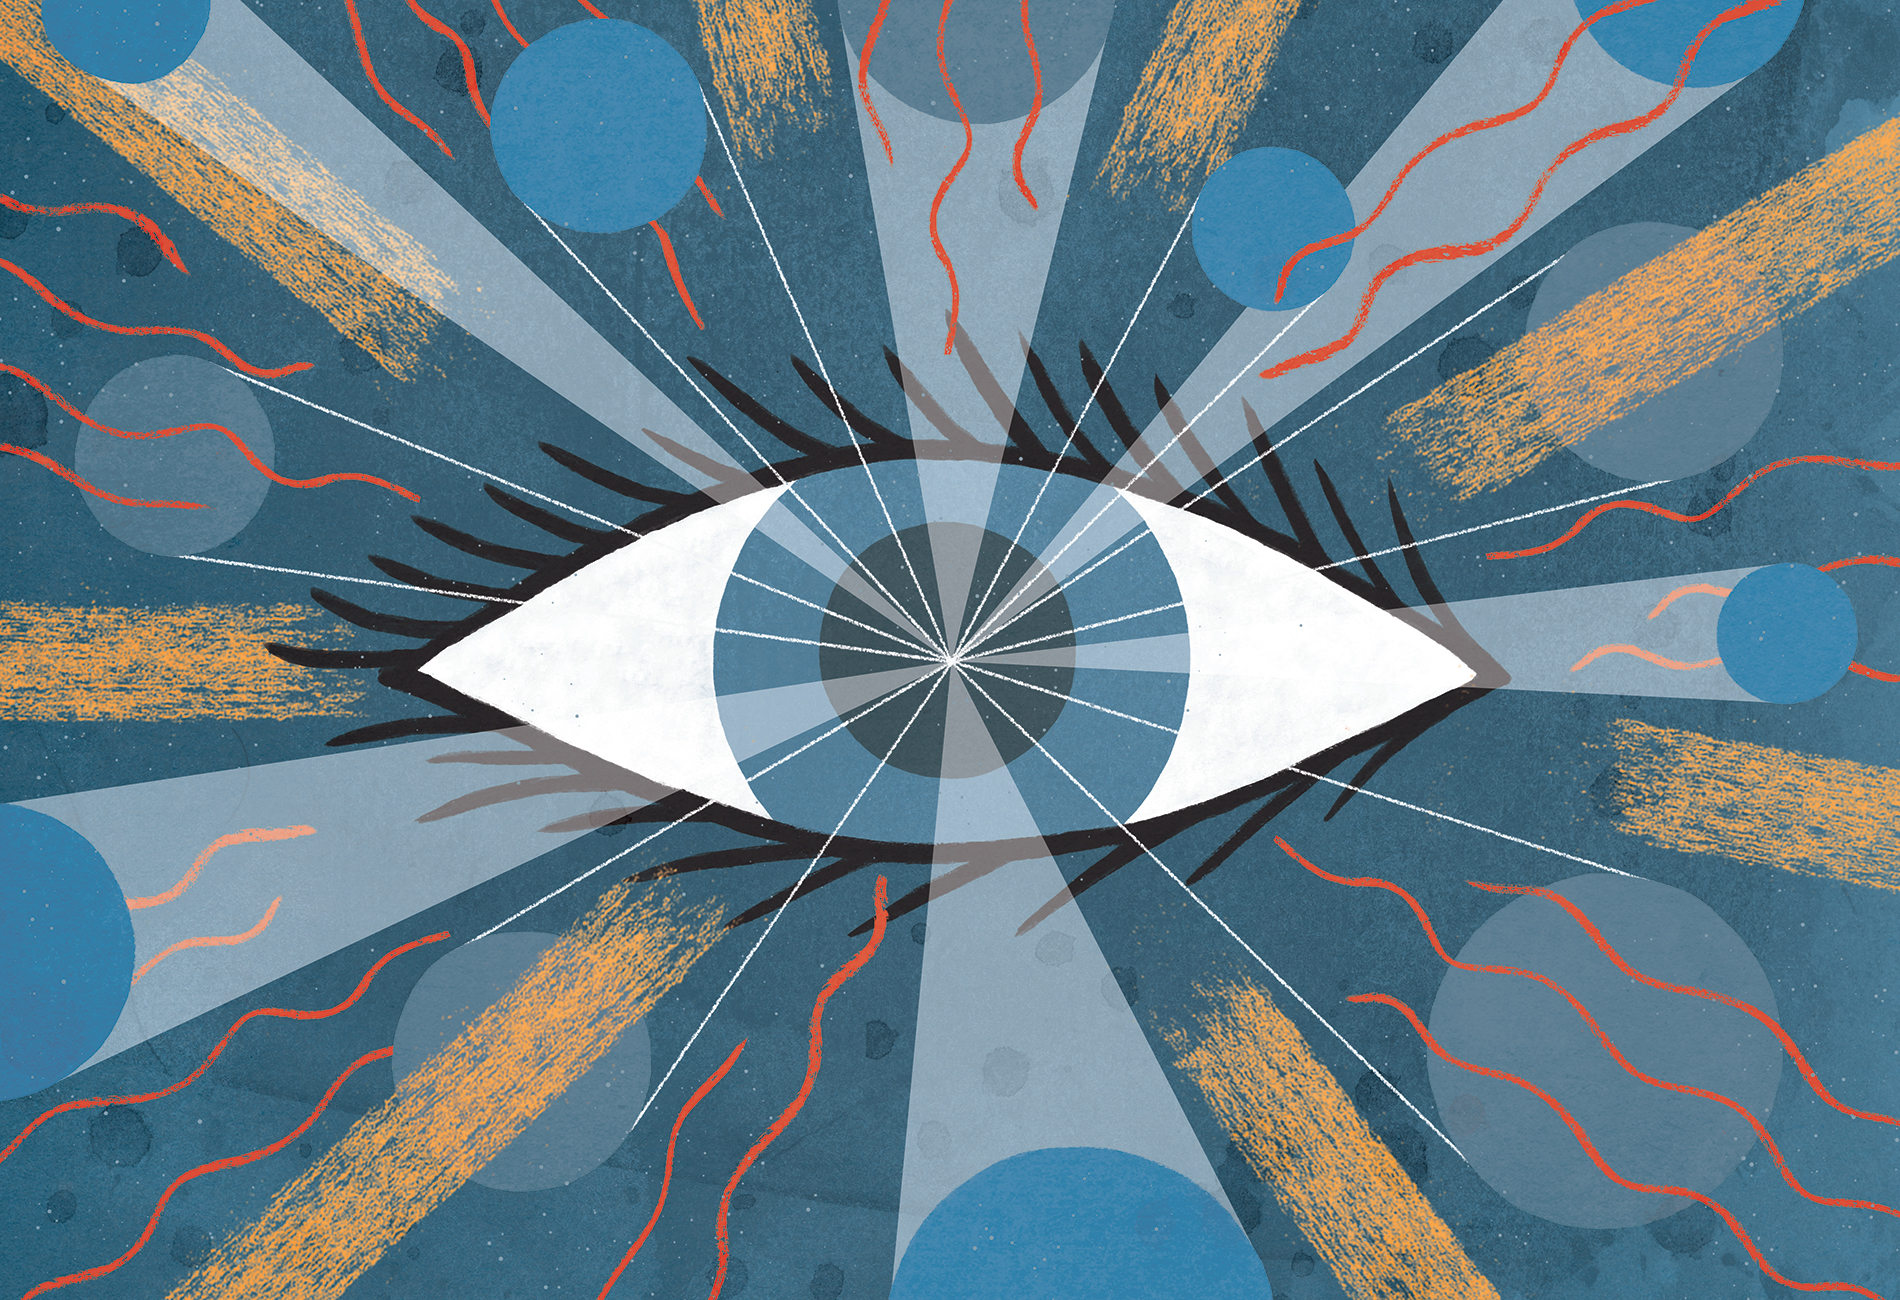 Illustration shows a central eye with different patterns emerging from it.